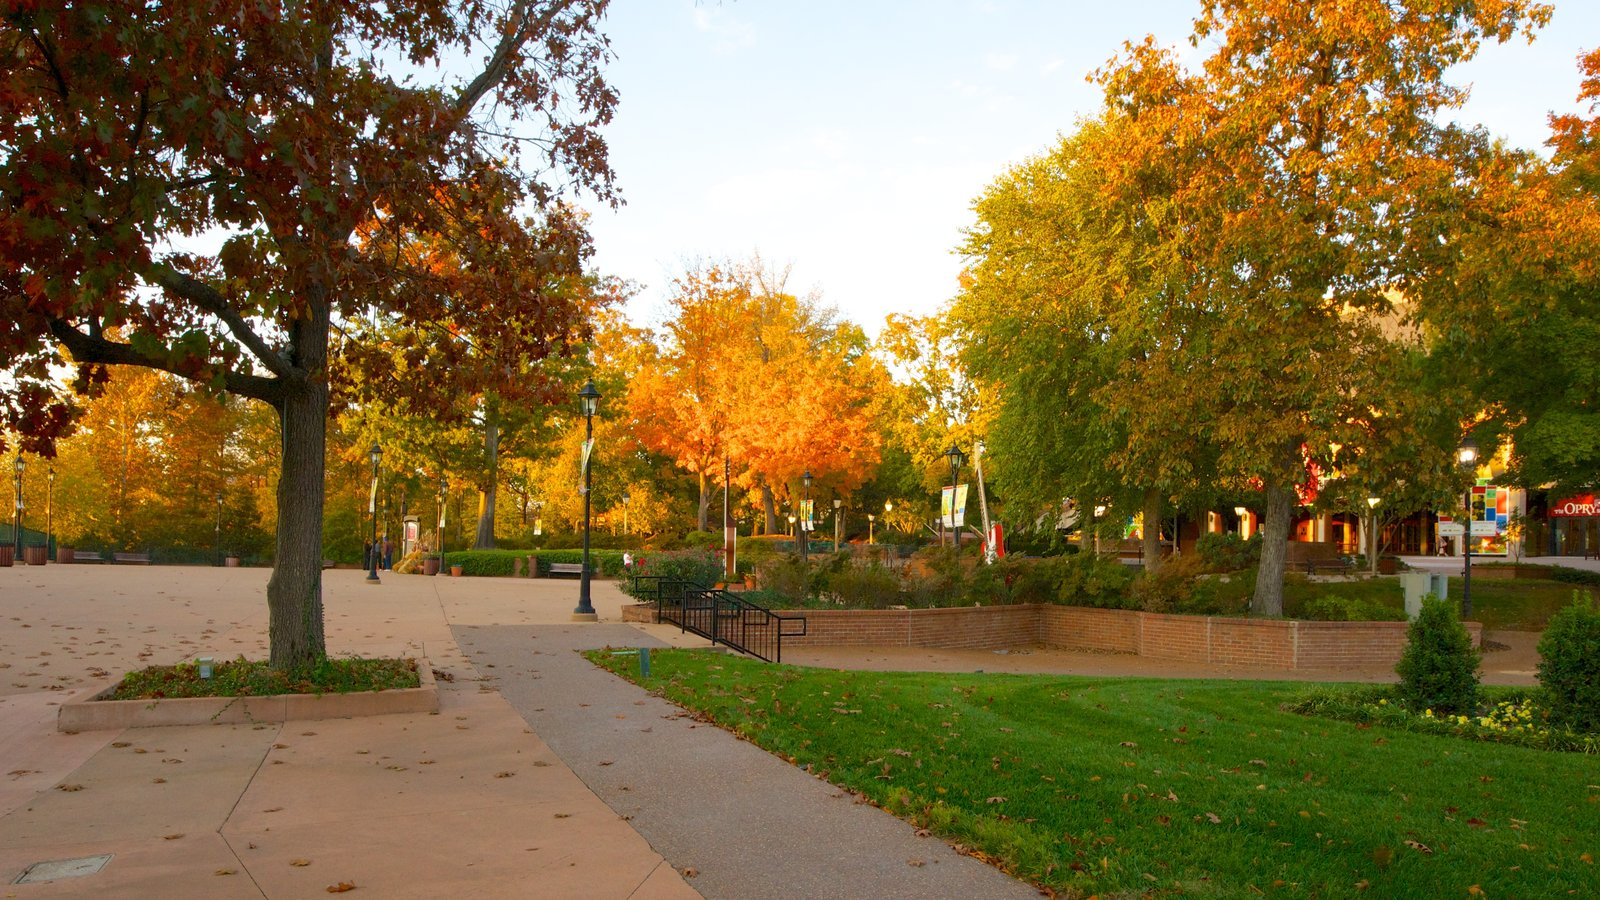 Grand Ole Opry featuring a park, autumn leaves and landscape views